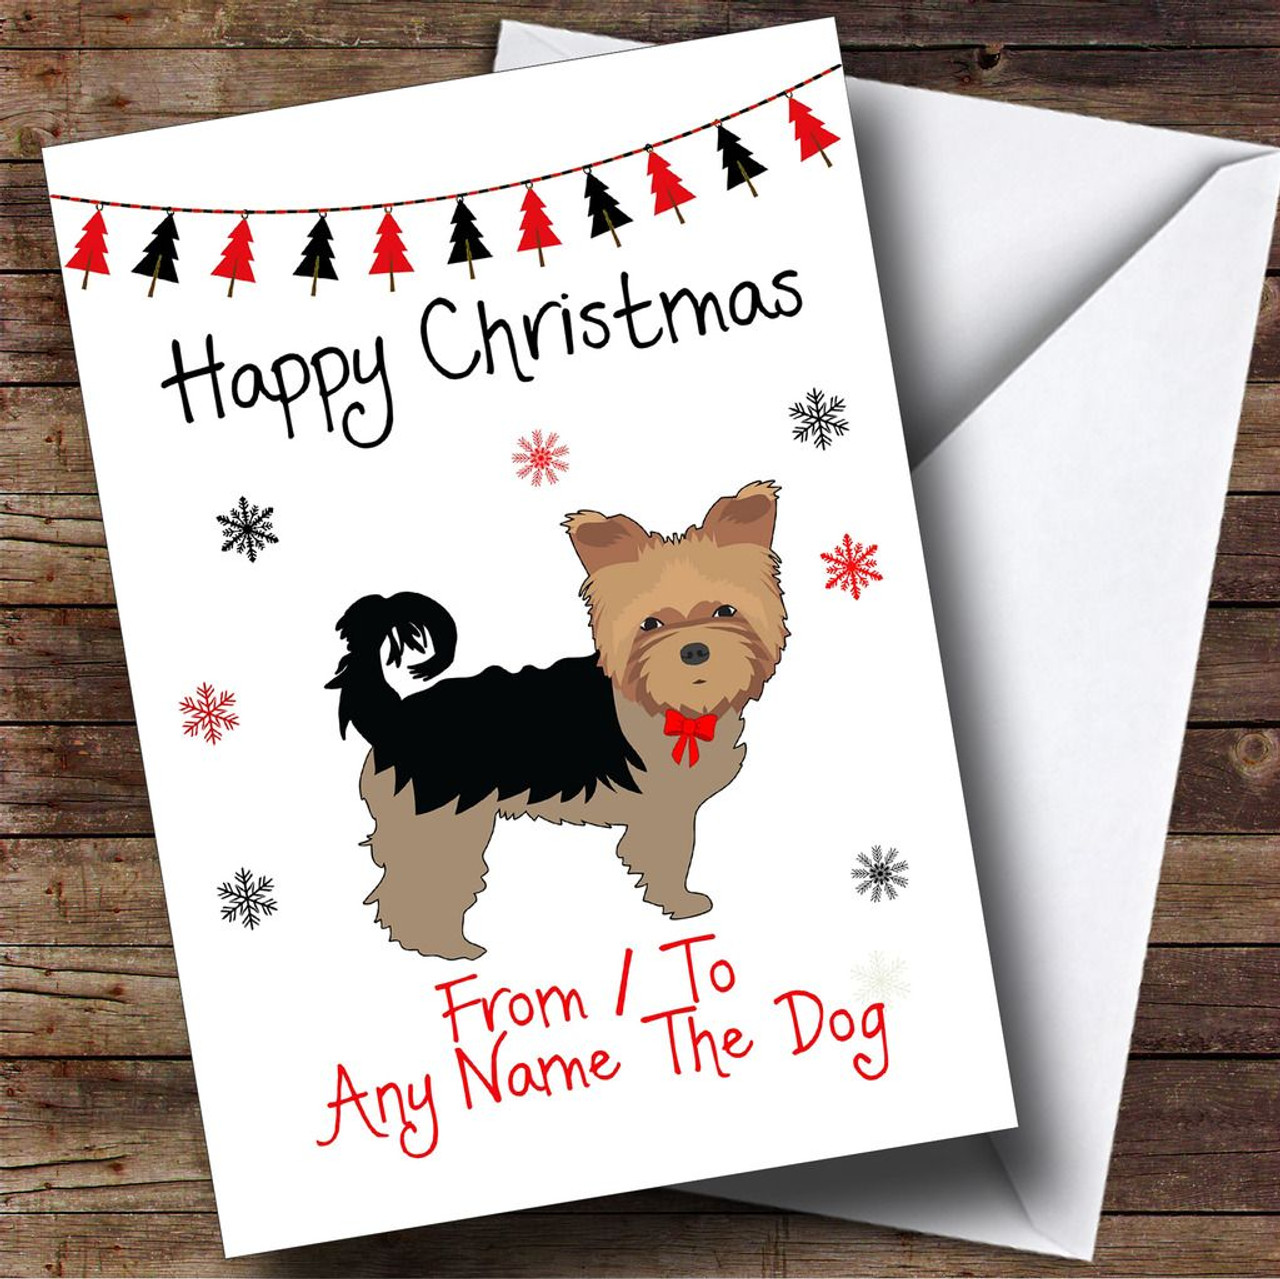 From Or To The Dog Yorkshire Terrier Pet Personalised Christmas Card